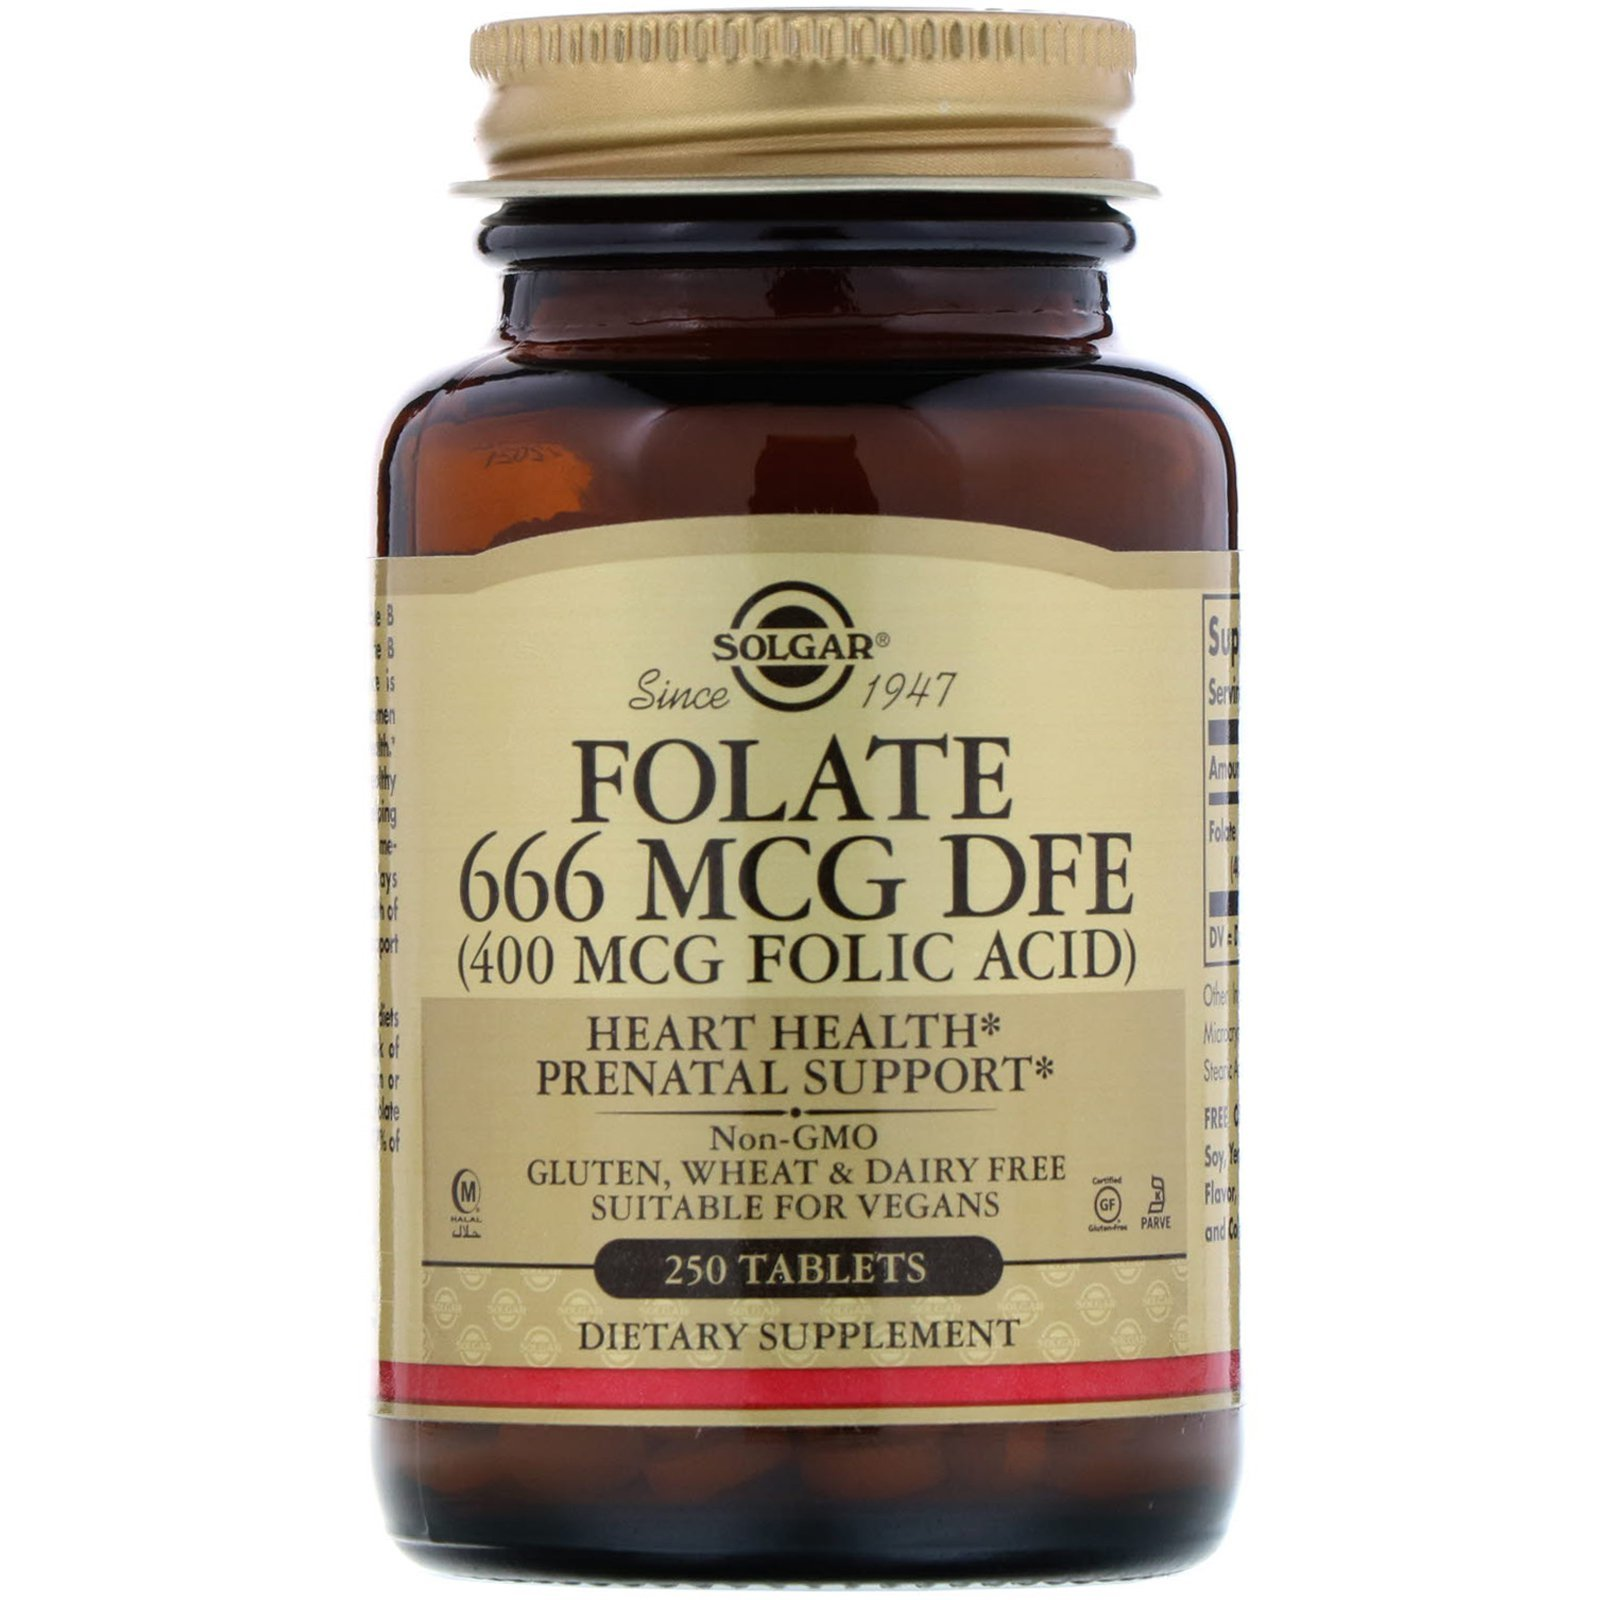 Фолиевая кислота (Folic Acid), Solgar, 400 мкг, 250 таблеток